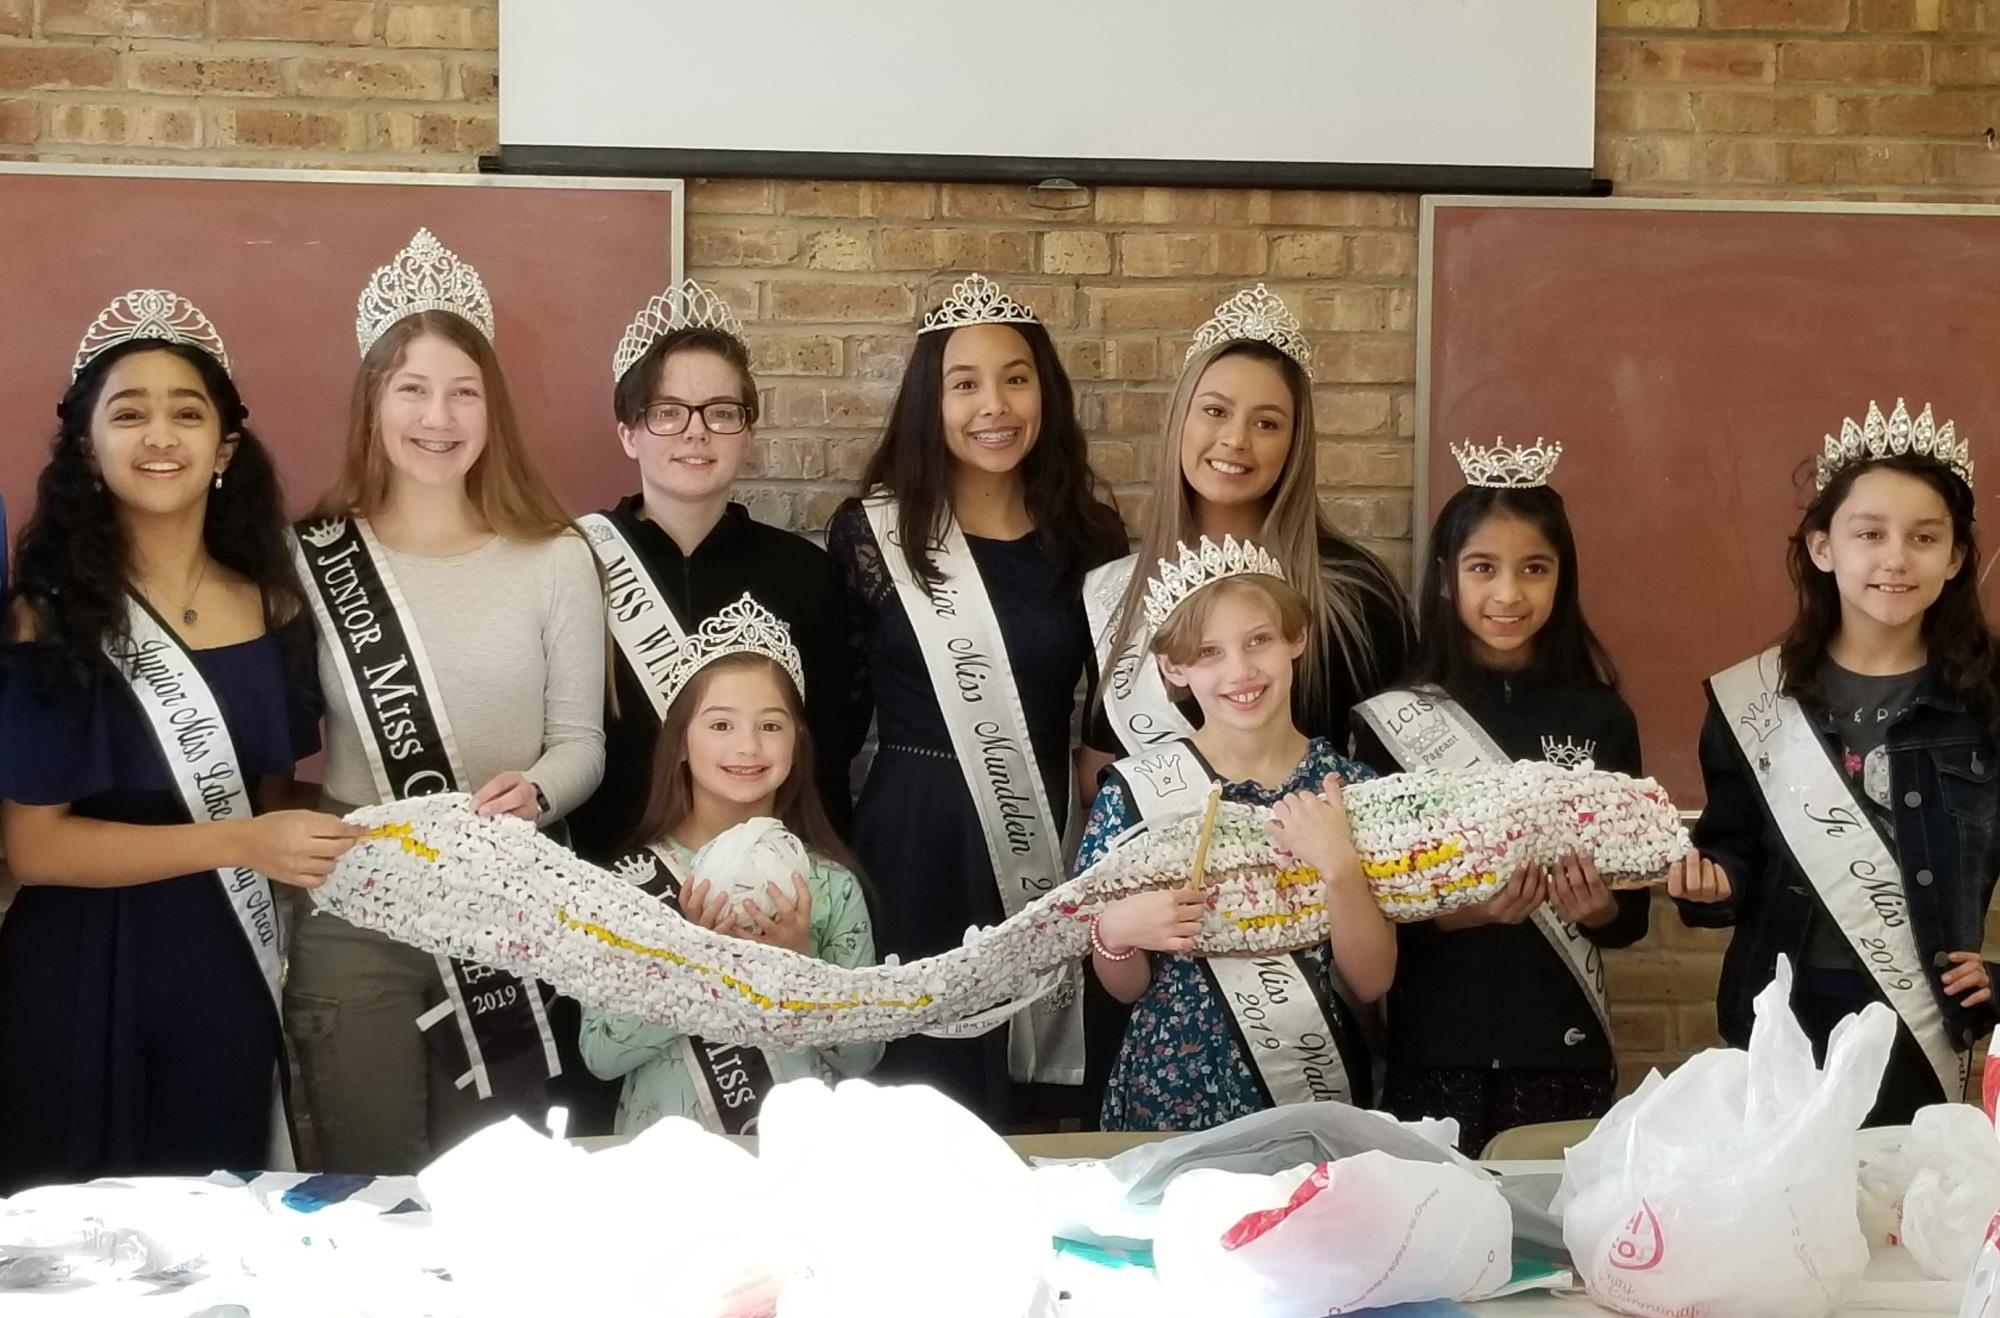 Mundelein Pageant Takes Place Sunday